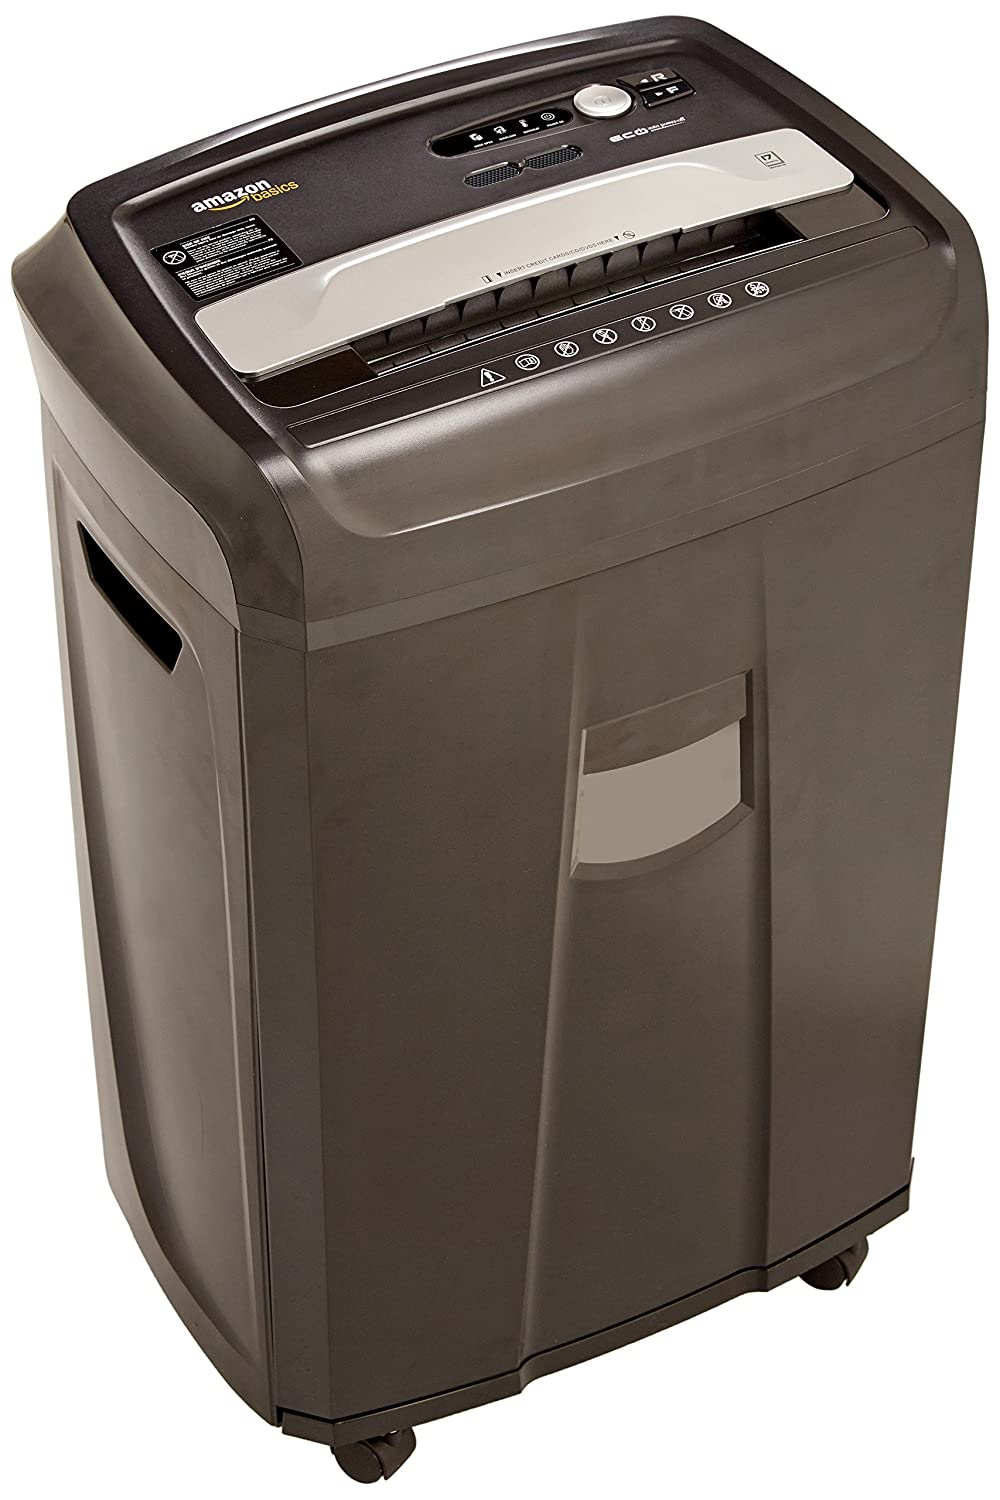 Best Paper Shredder 2020.Top 10 Best Micro Cut Shredders For Office Use Reviews 2018